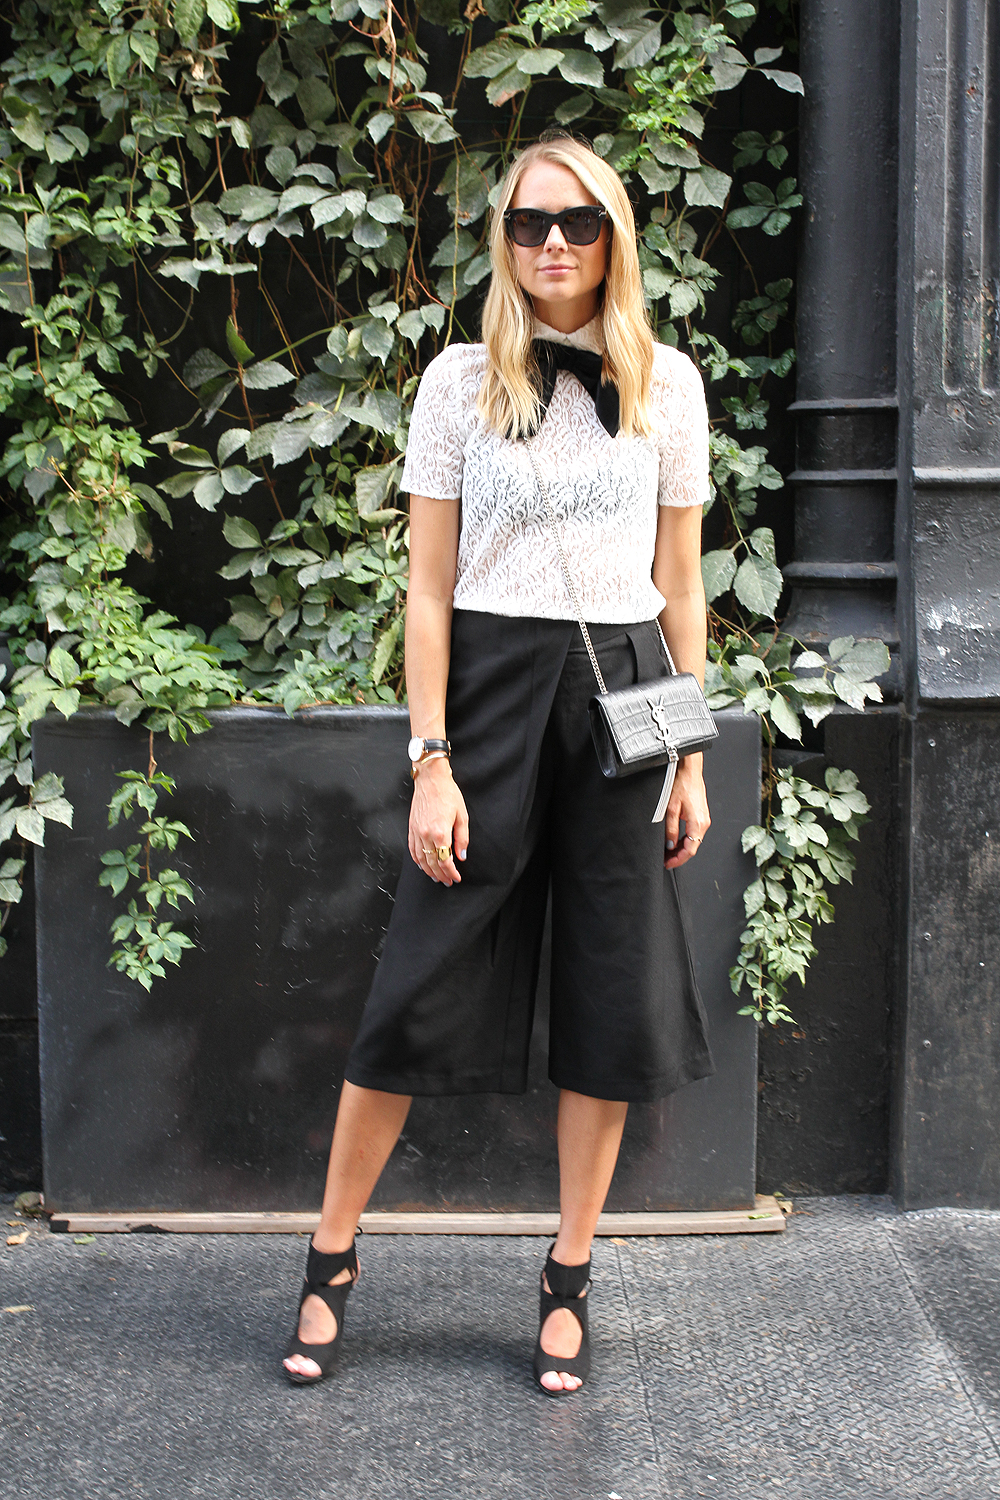 fashion-jackson-the-kooples-lace-top-cameo-the-label-culottes-black-aquazzura-sexy-thing-heels-similar-ysl-crossbody